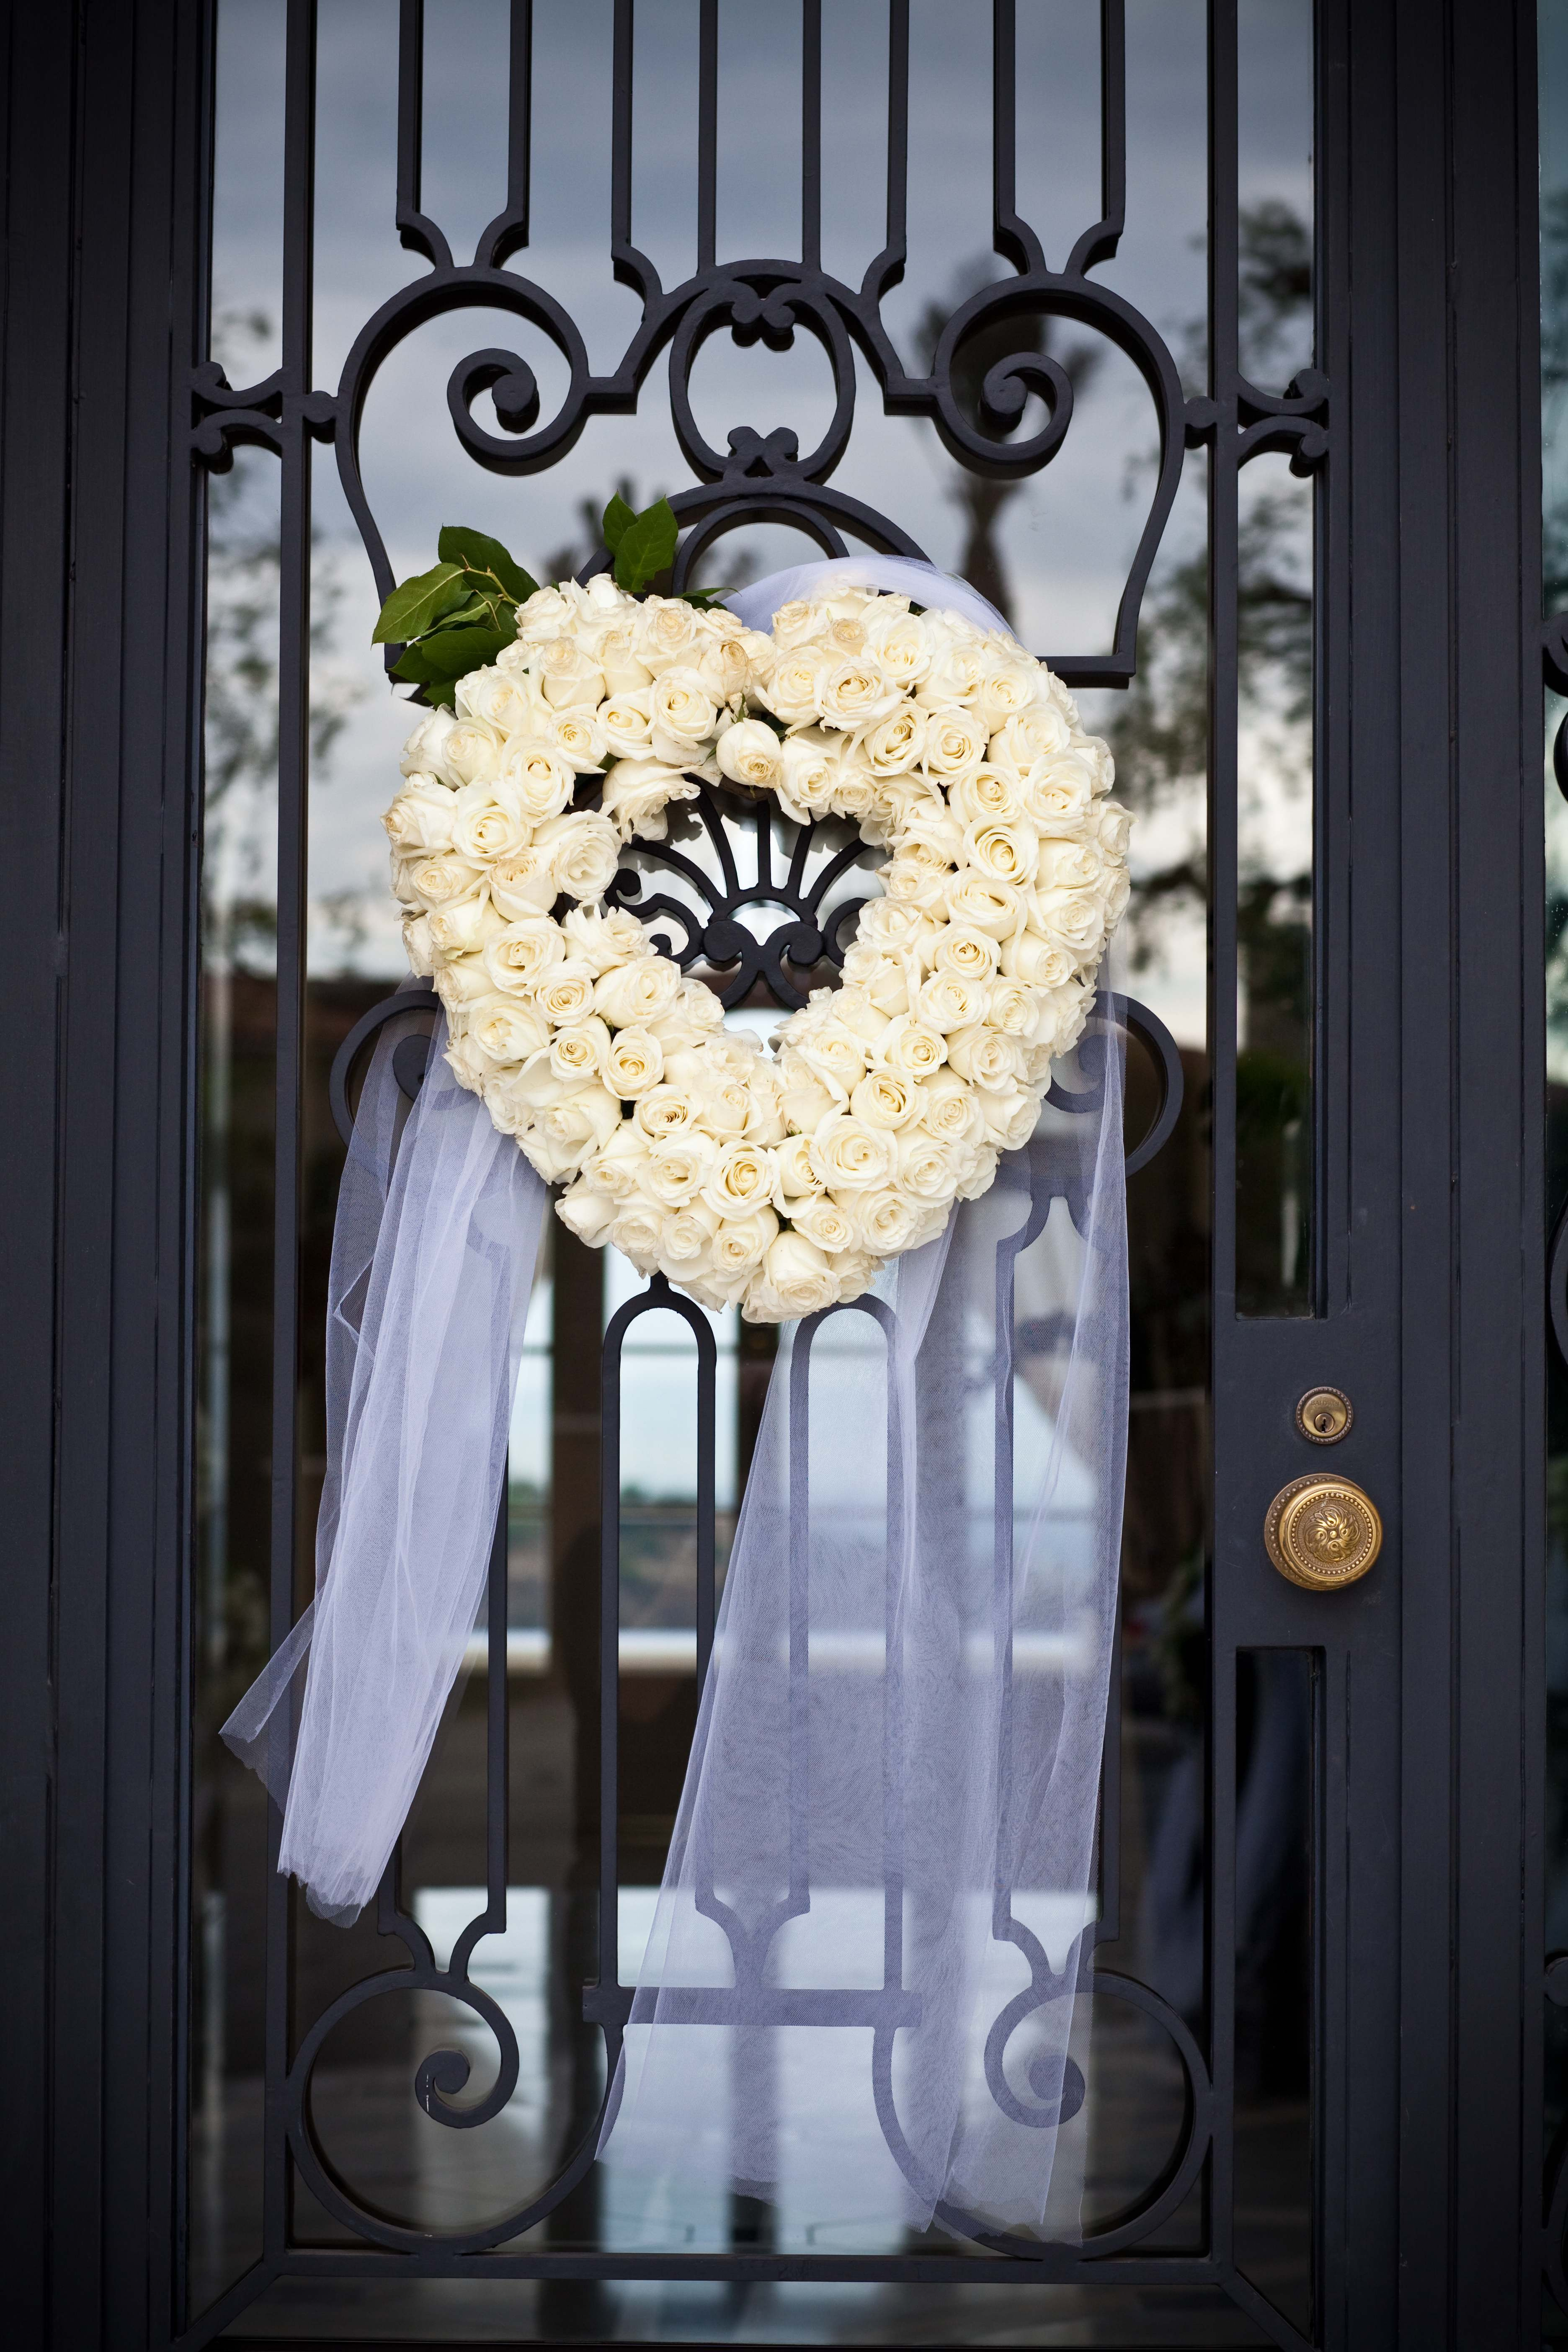 White rose heart shape wreath on iron gate for wedding